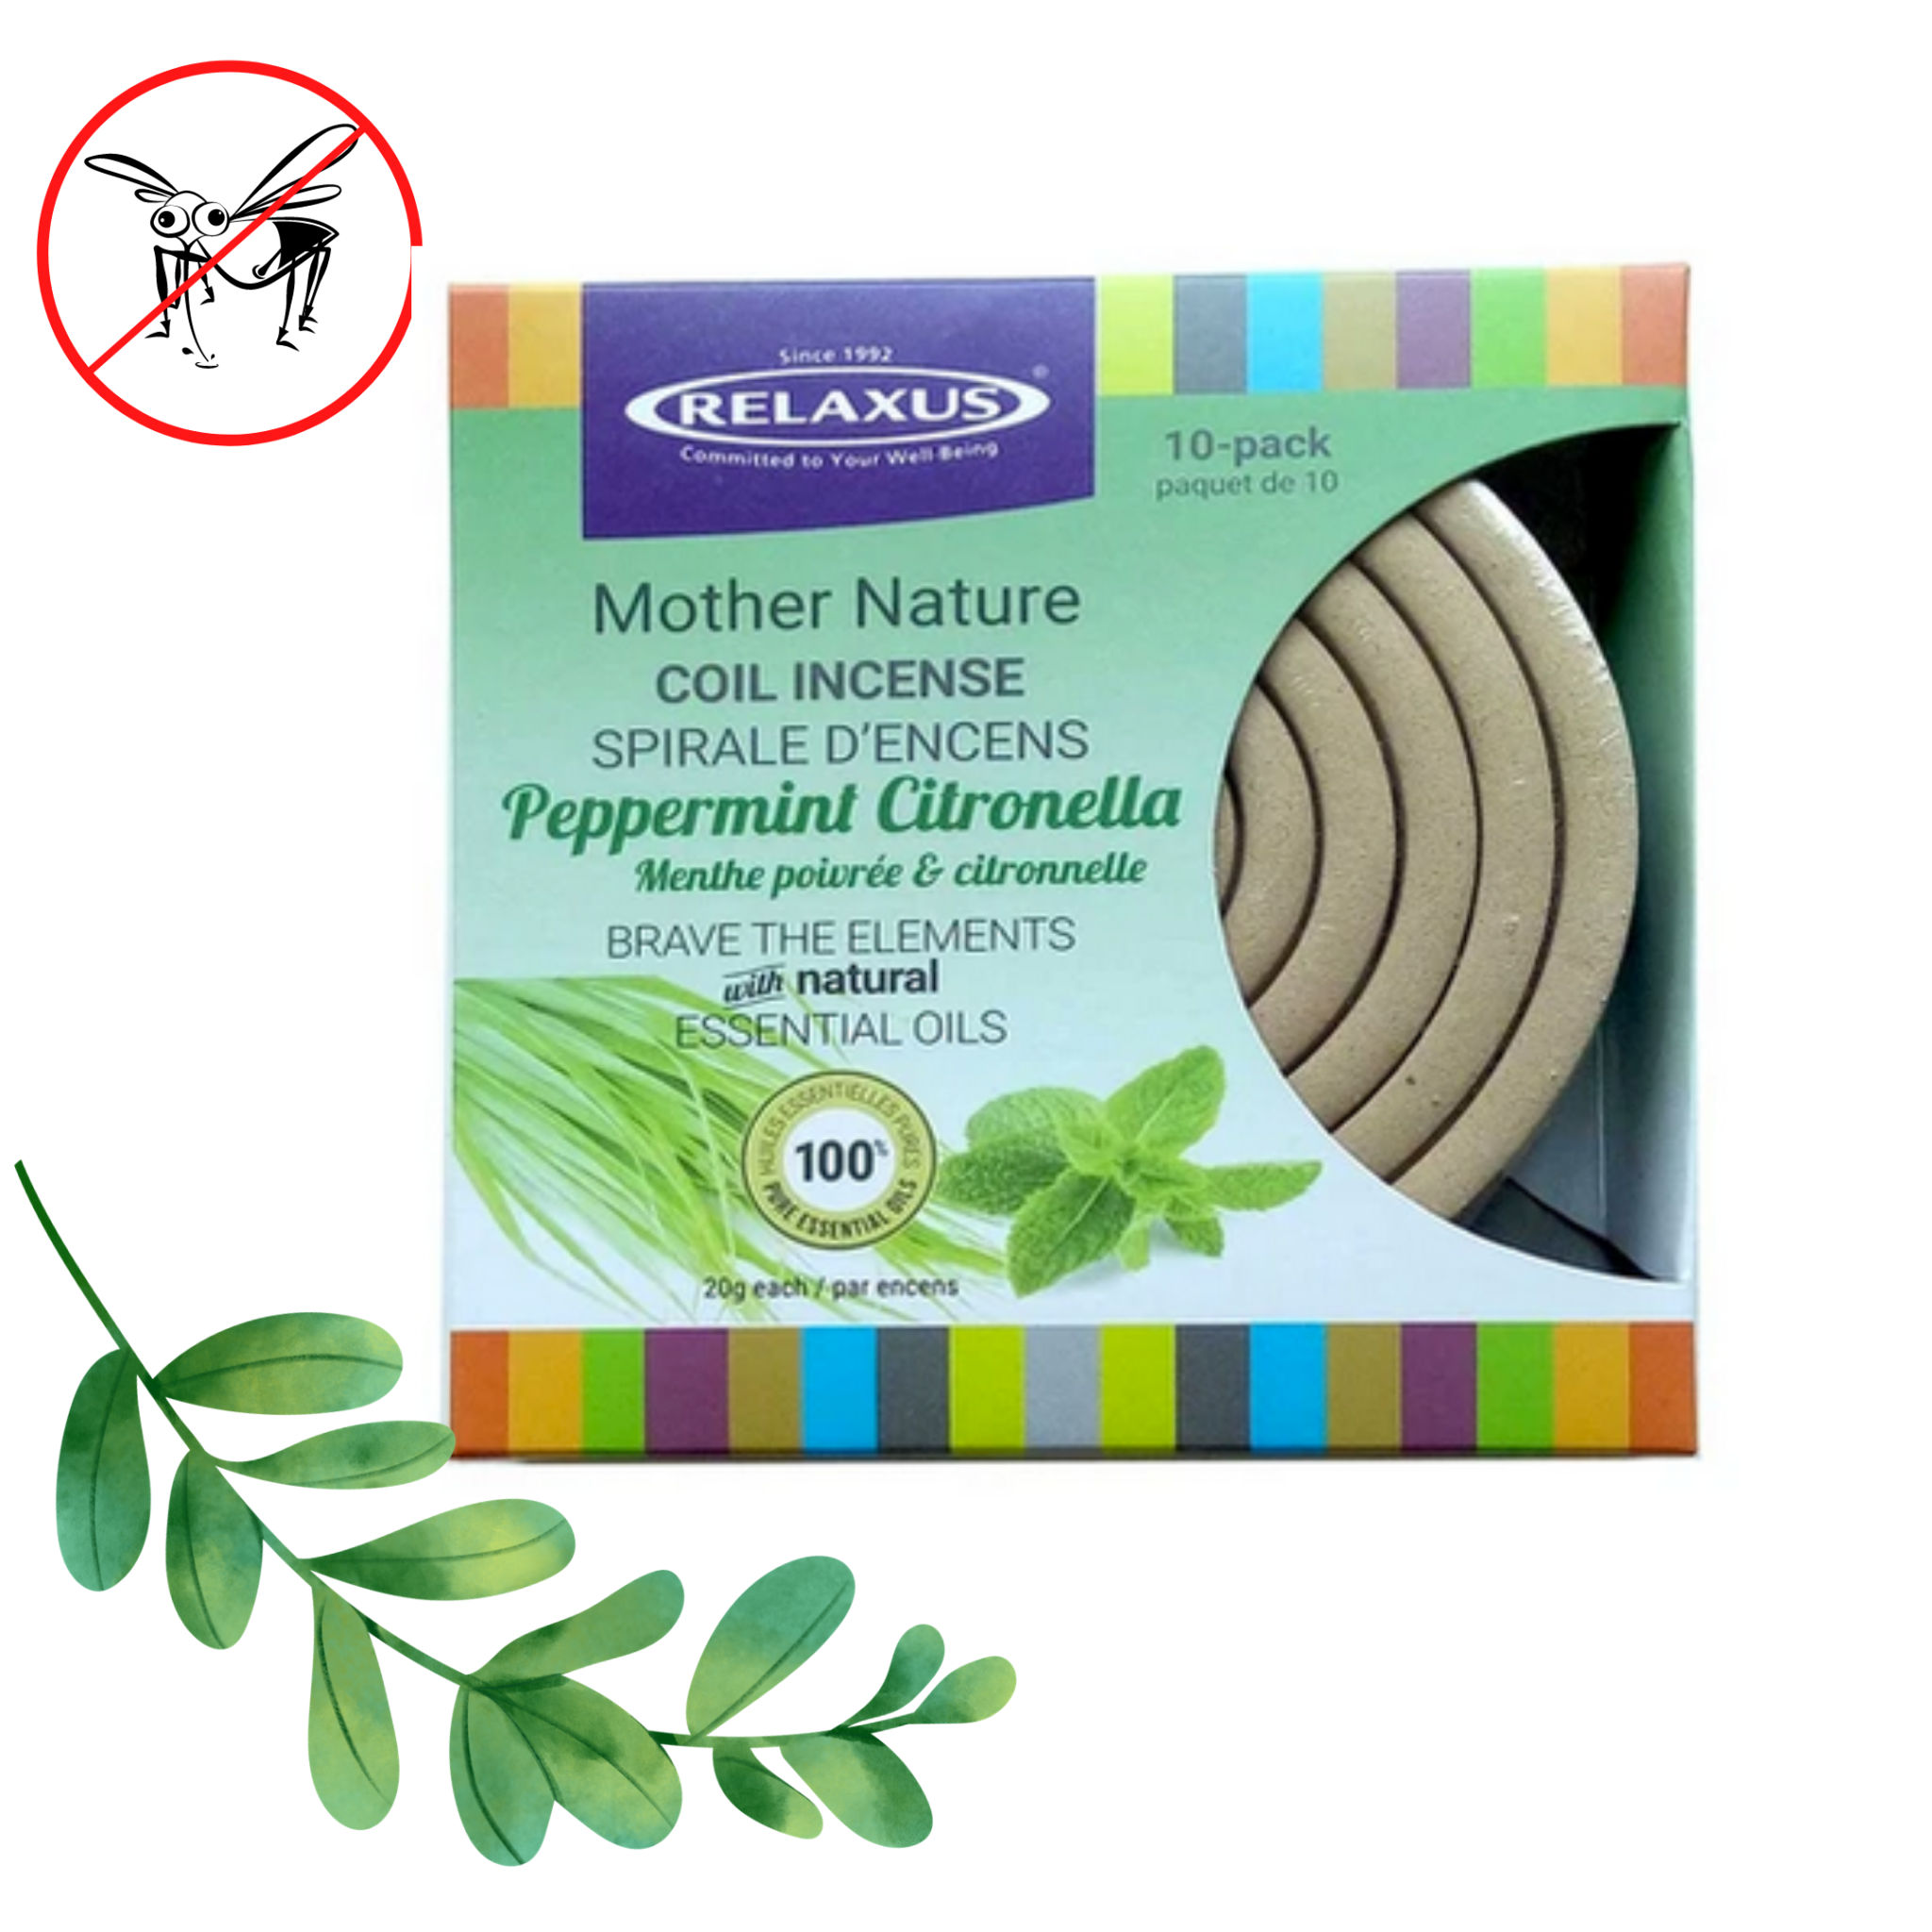 PEPPERMINT CITRONELLA COIL INCENSE